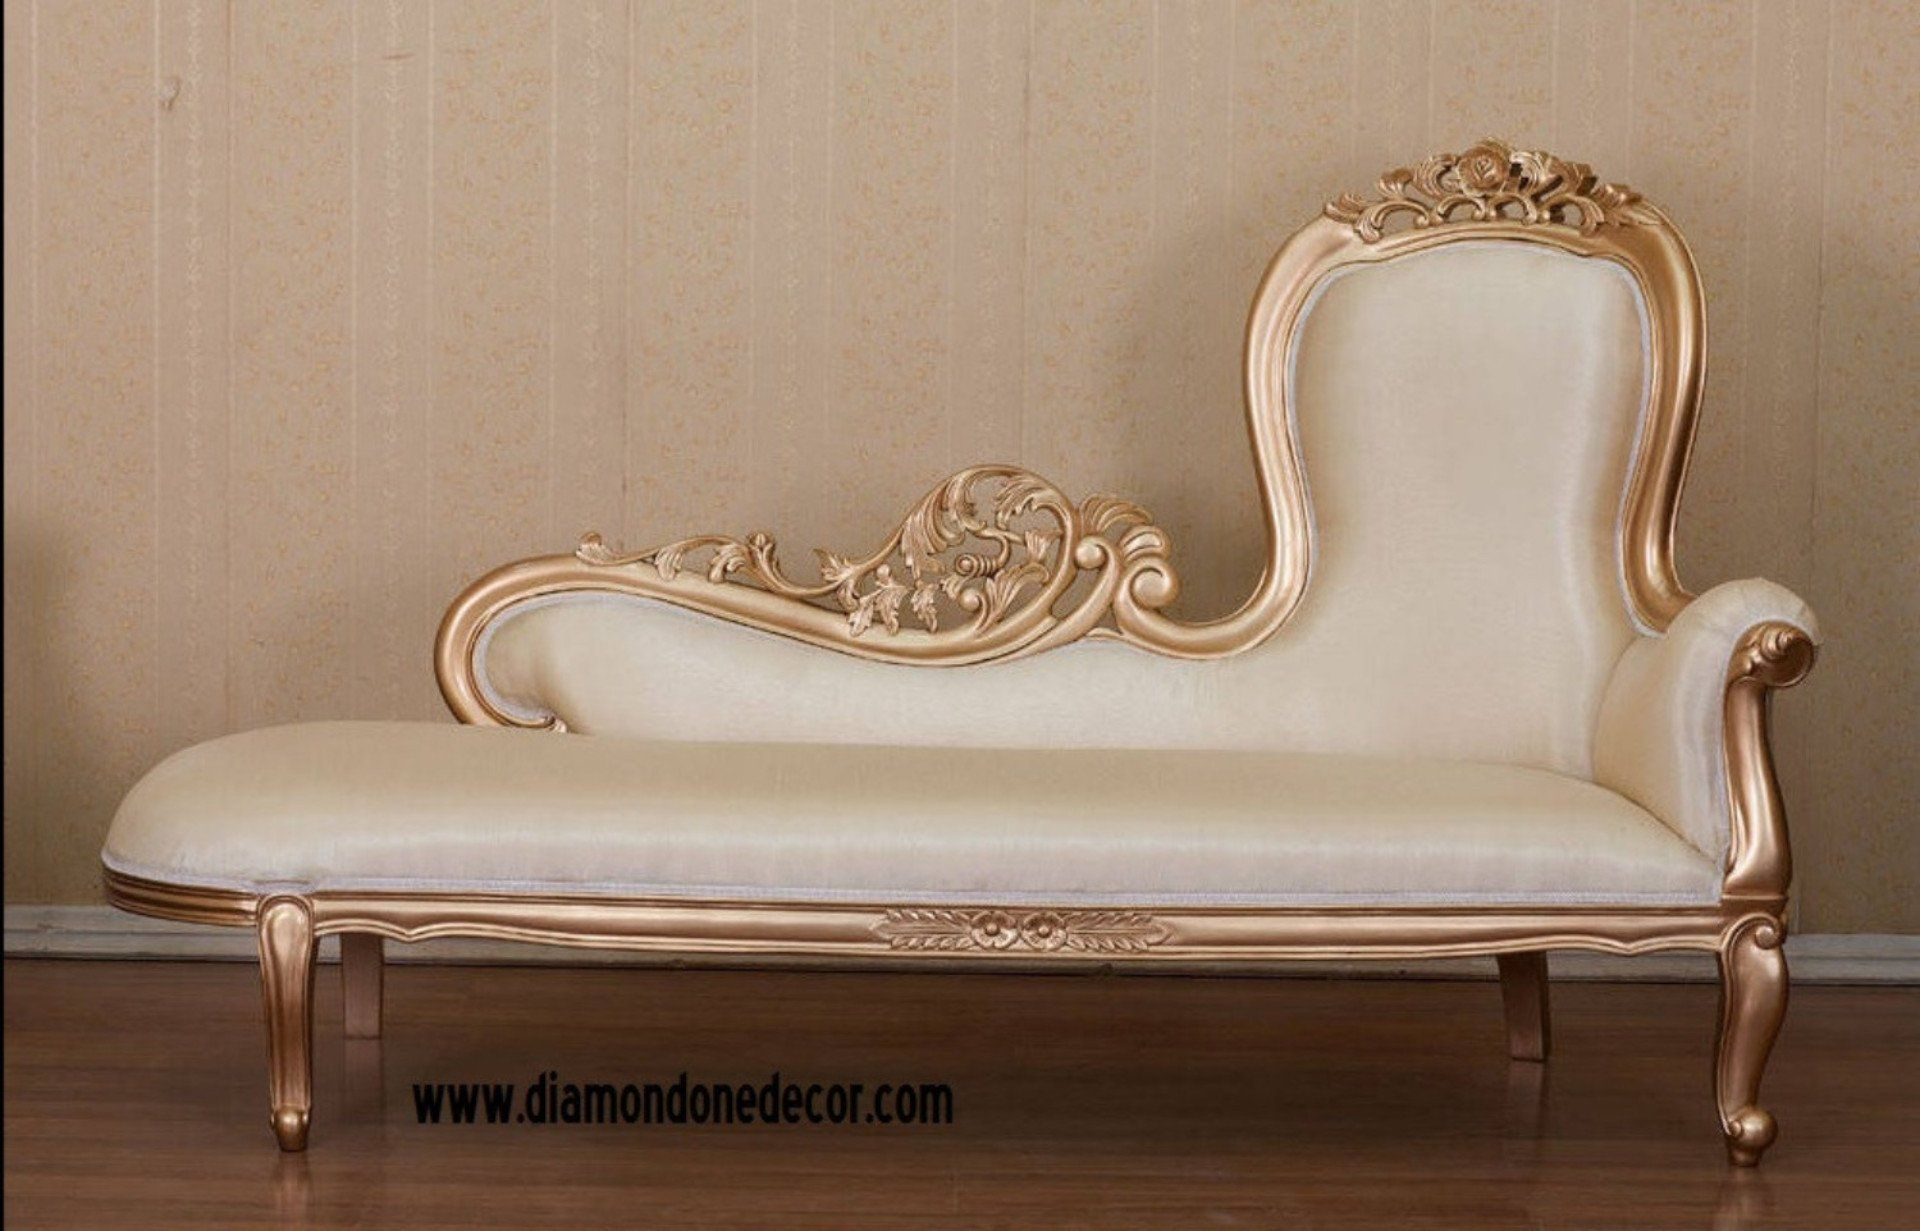 Baroque French Reproduction Louis Xvi Style Fainting Couch Or Chaise L Diamond One Decor